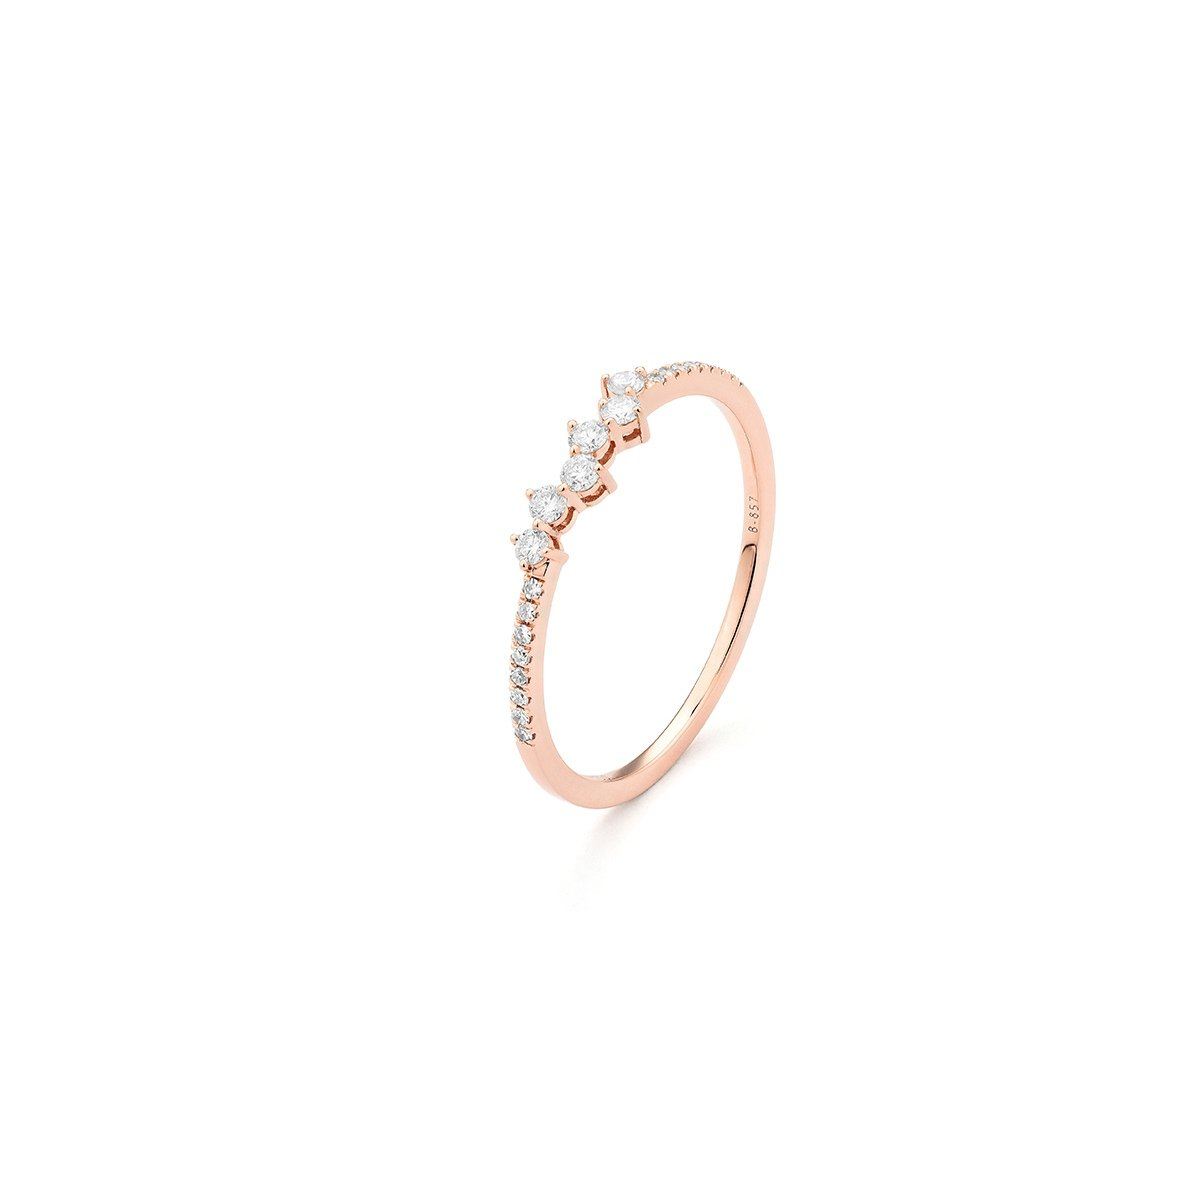 Bague en or rose et diamants de 0.17ct